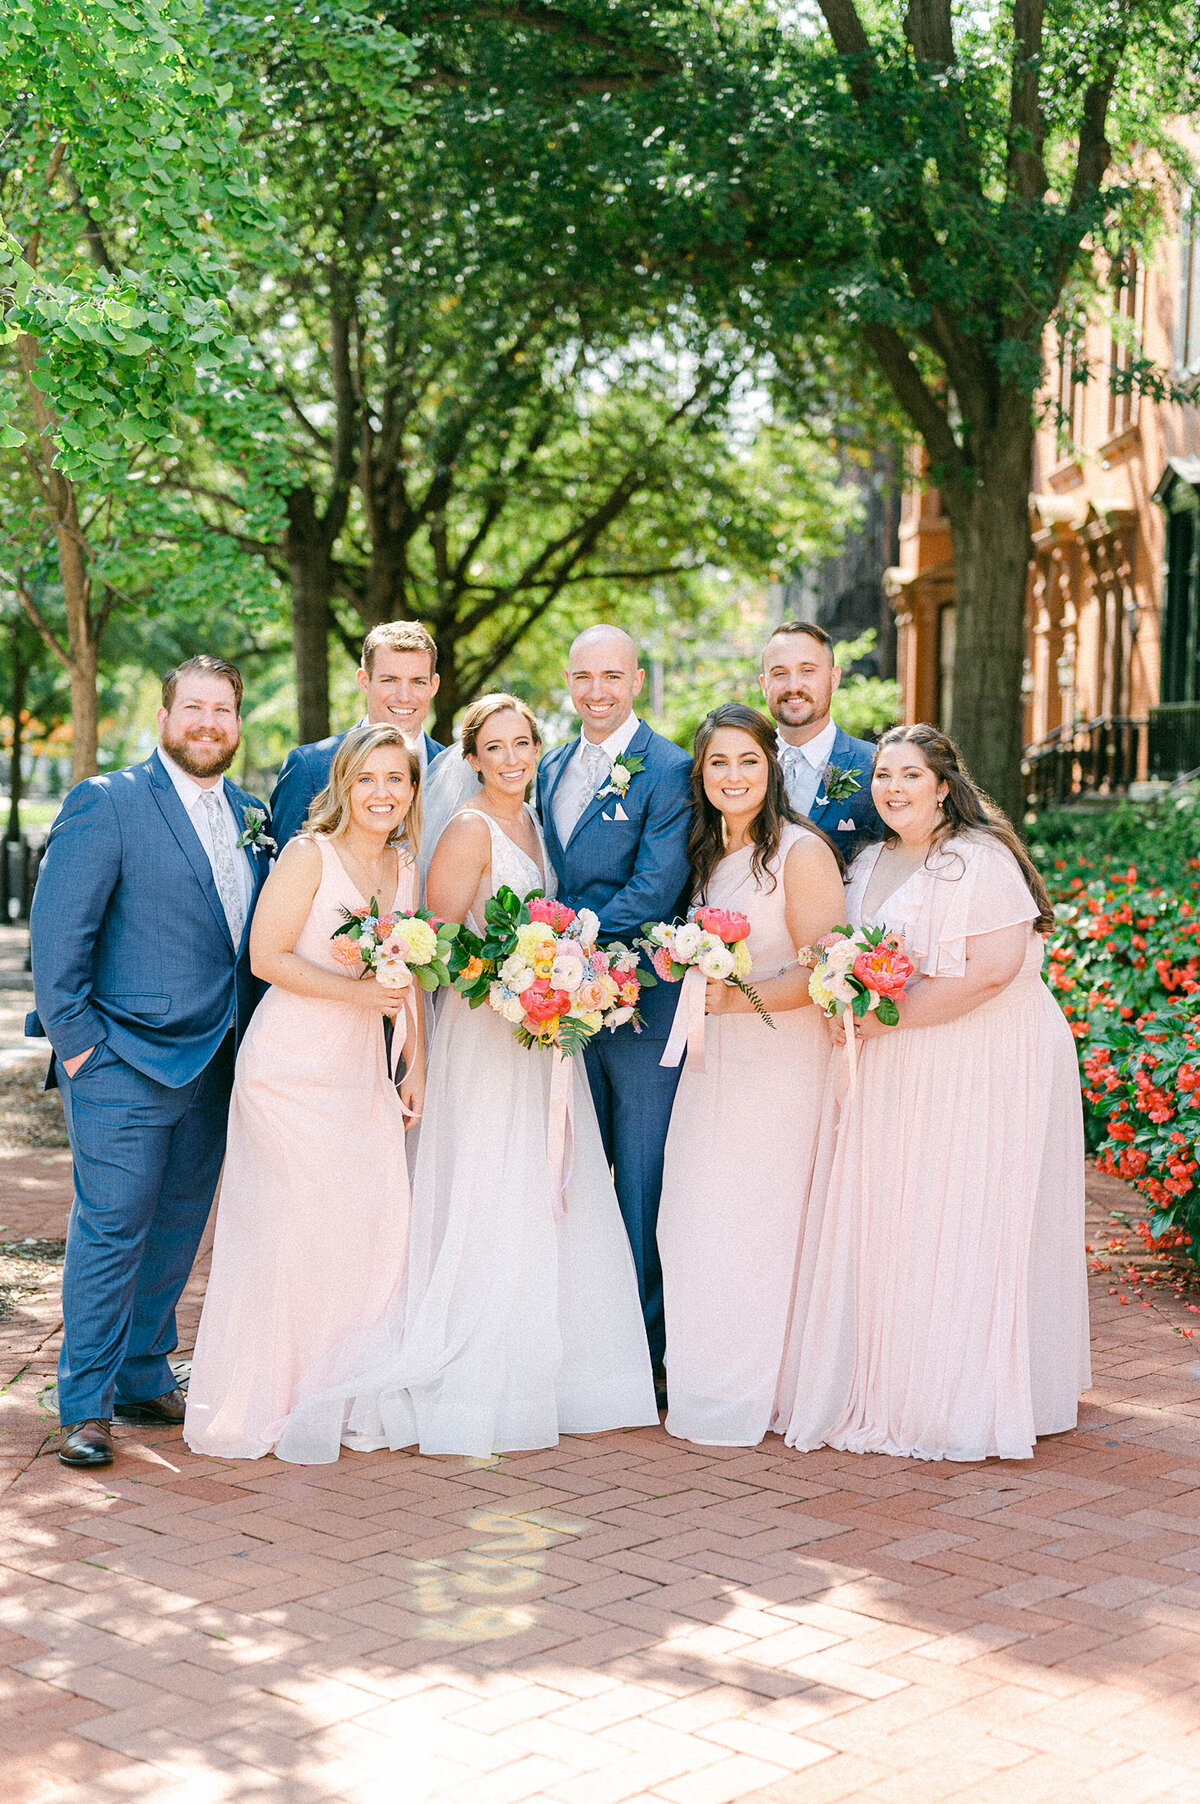 Jennifer Bosak Photography - DC Area Wedding Photography - DC, Virginia, Maryland - Jeanna + Michael - Decatur House Wedding - 9